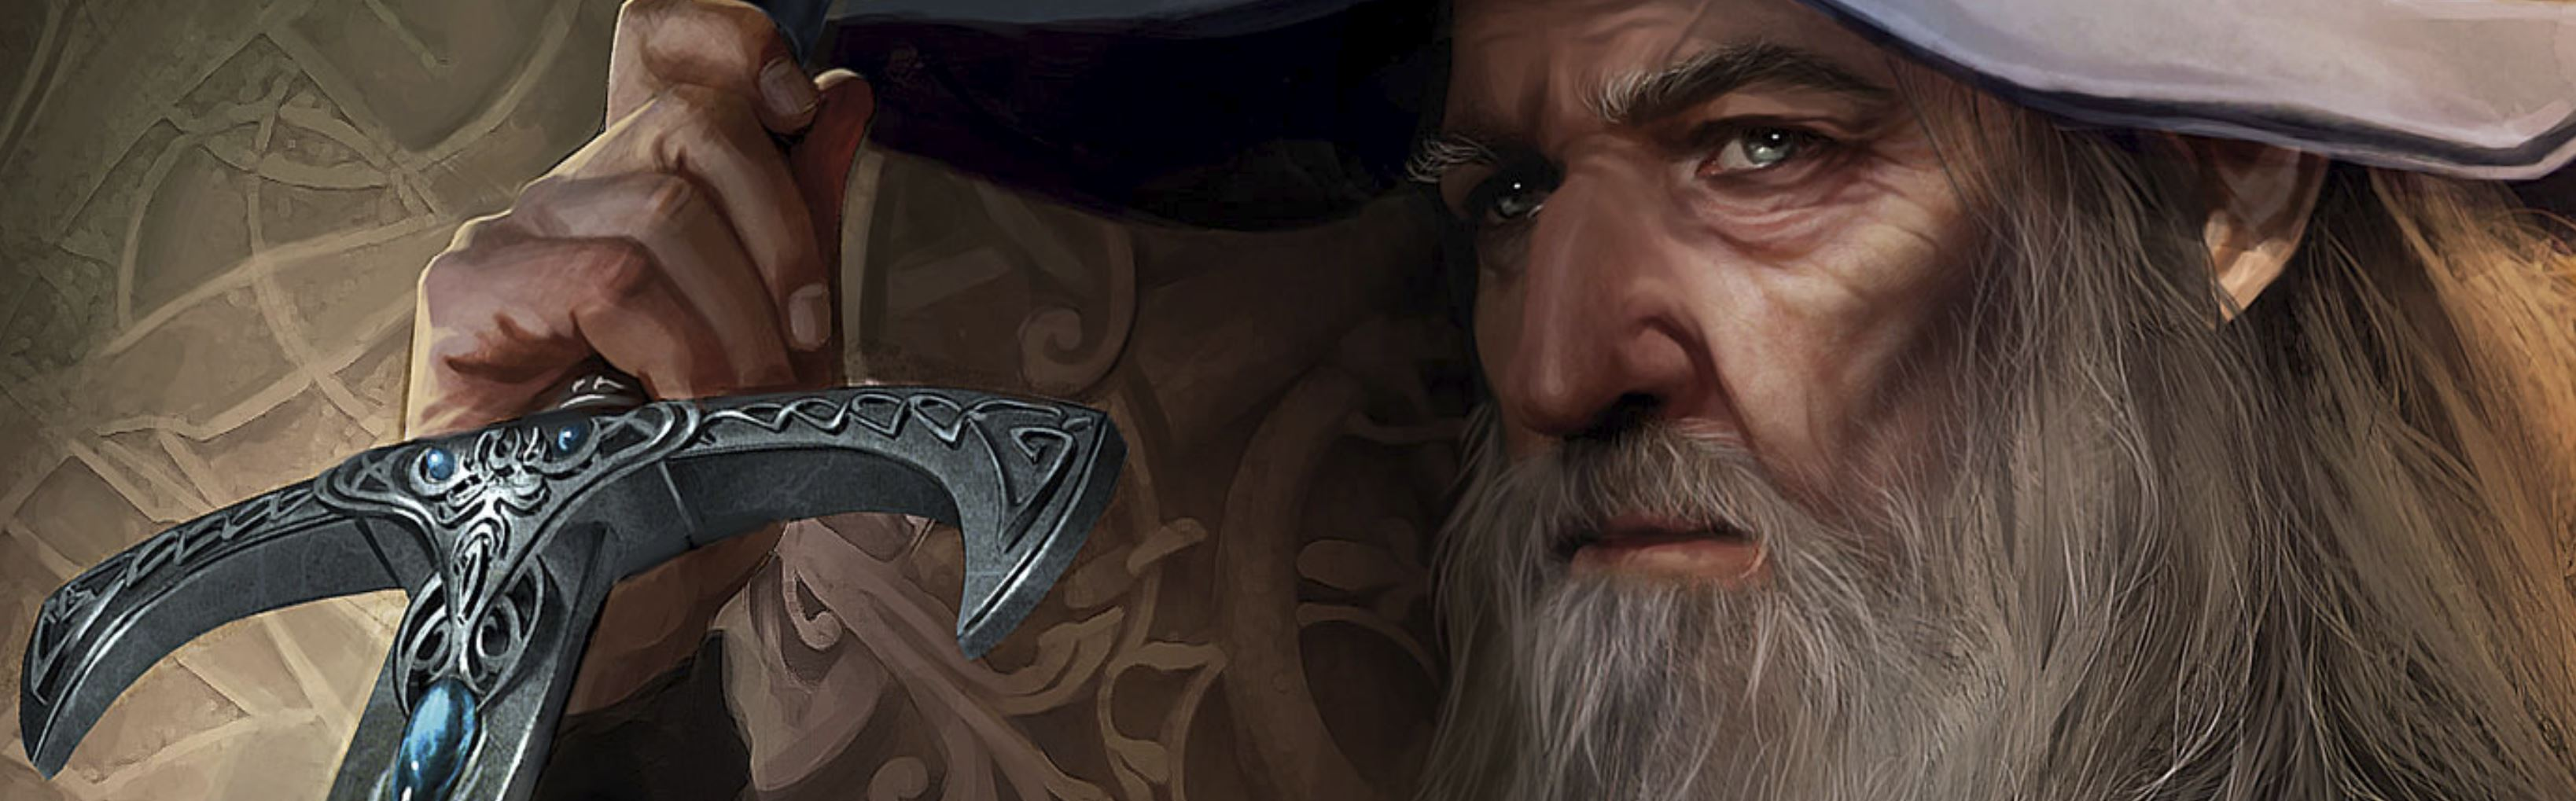 The Lord of the Rings: Living Card Game выходит в ранний доступ